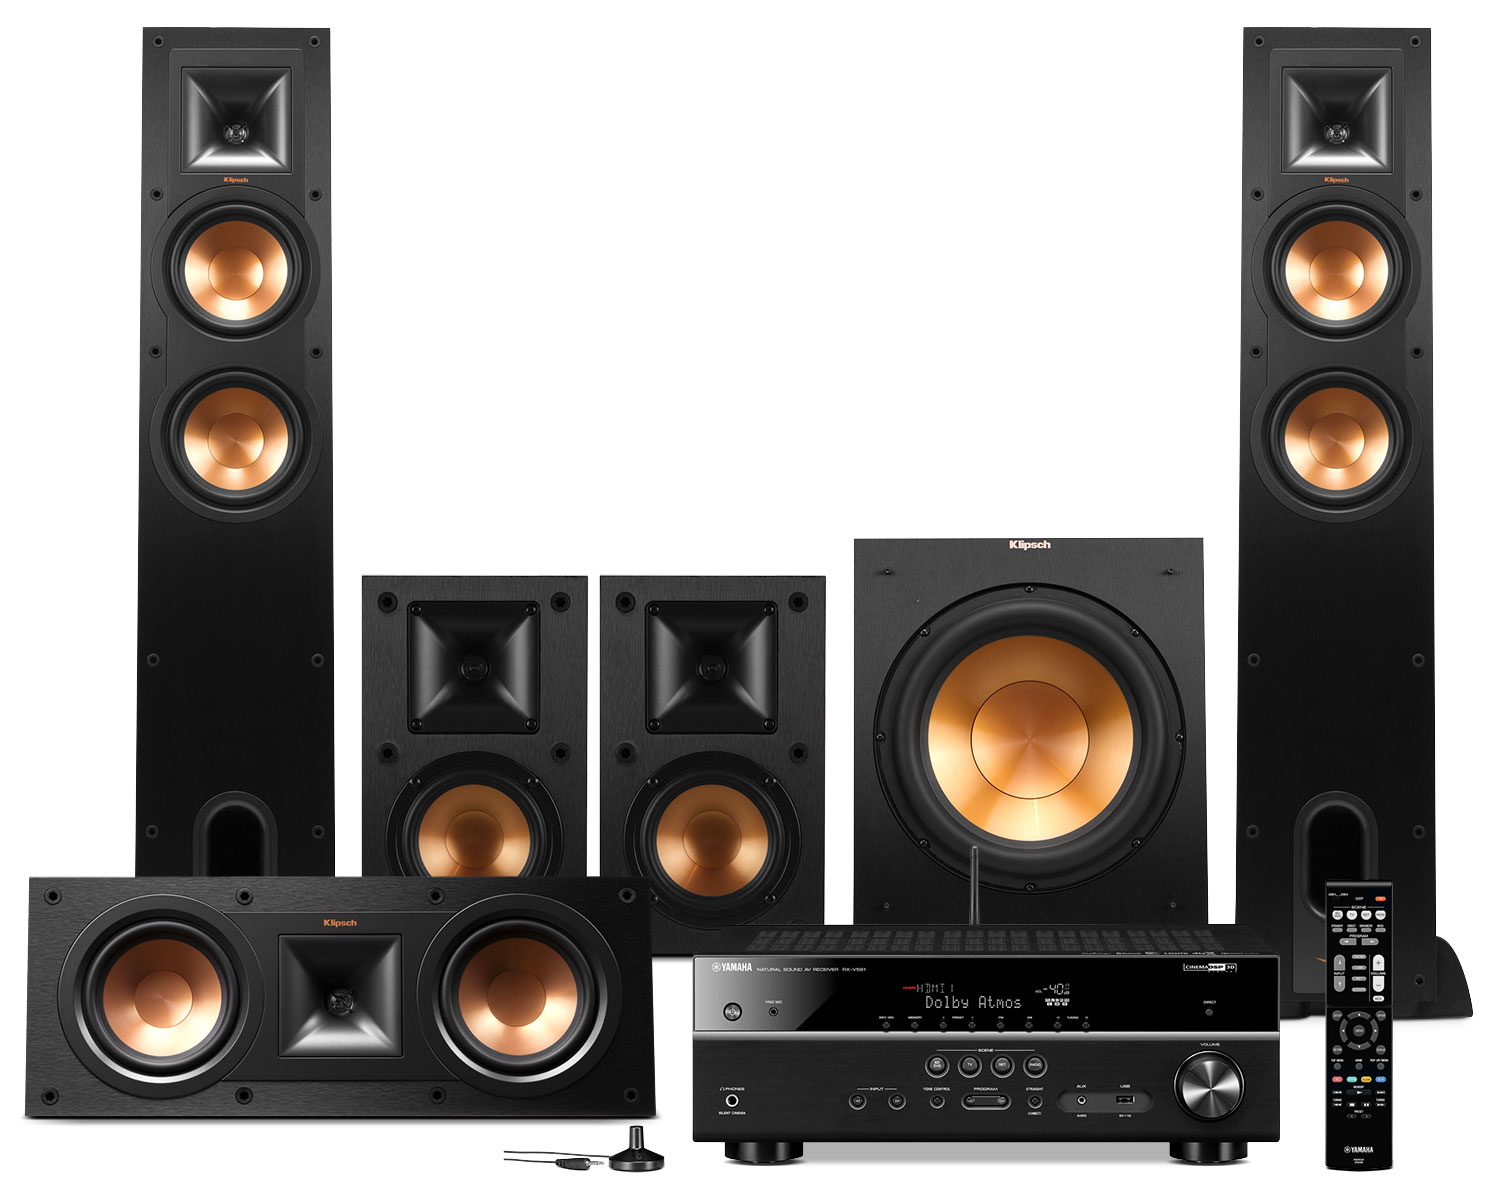 Sound Systems - Yamaha RX-V581 Home Theatre Package with Klipsch Speakers